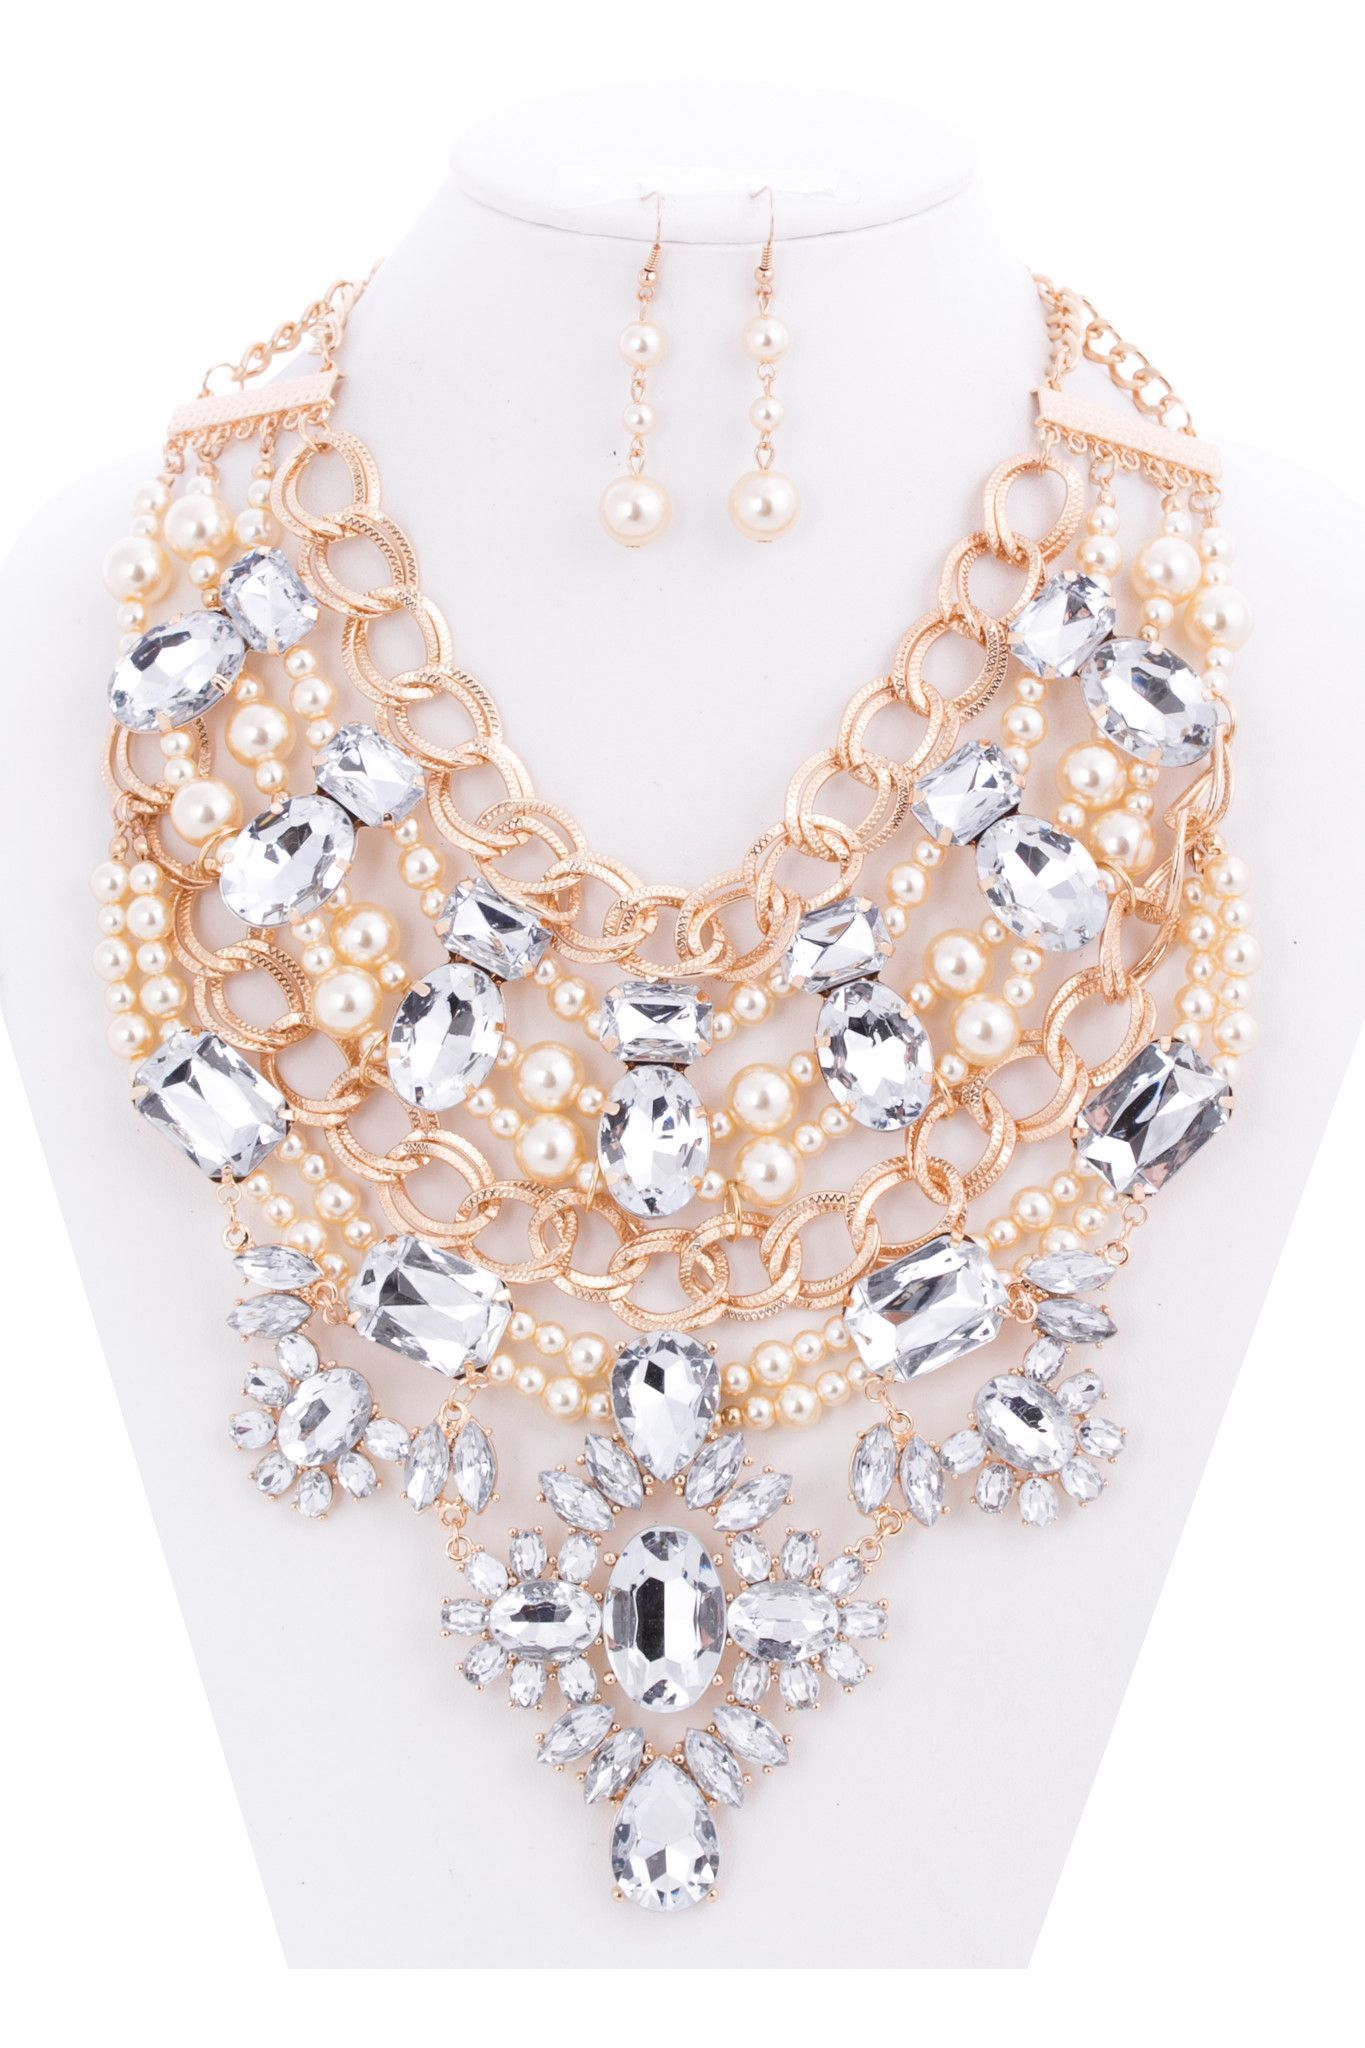 Christina jewel statement necklace and earrings set earring set